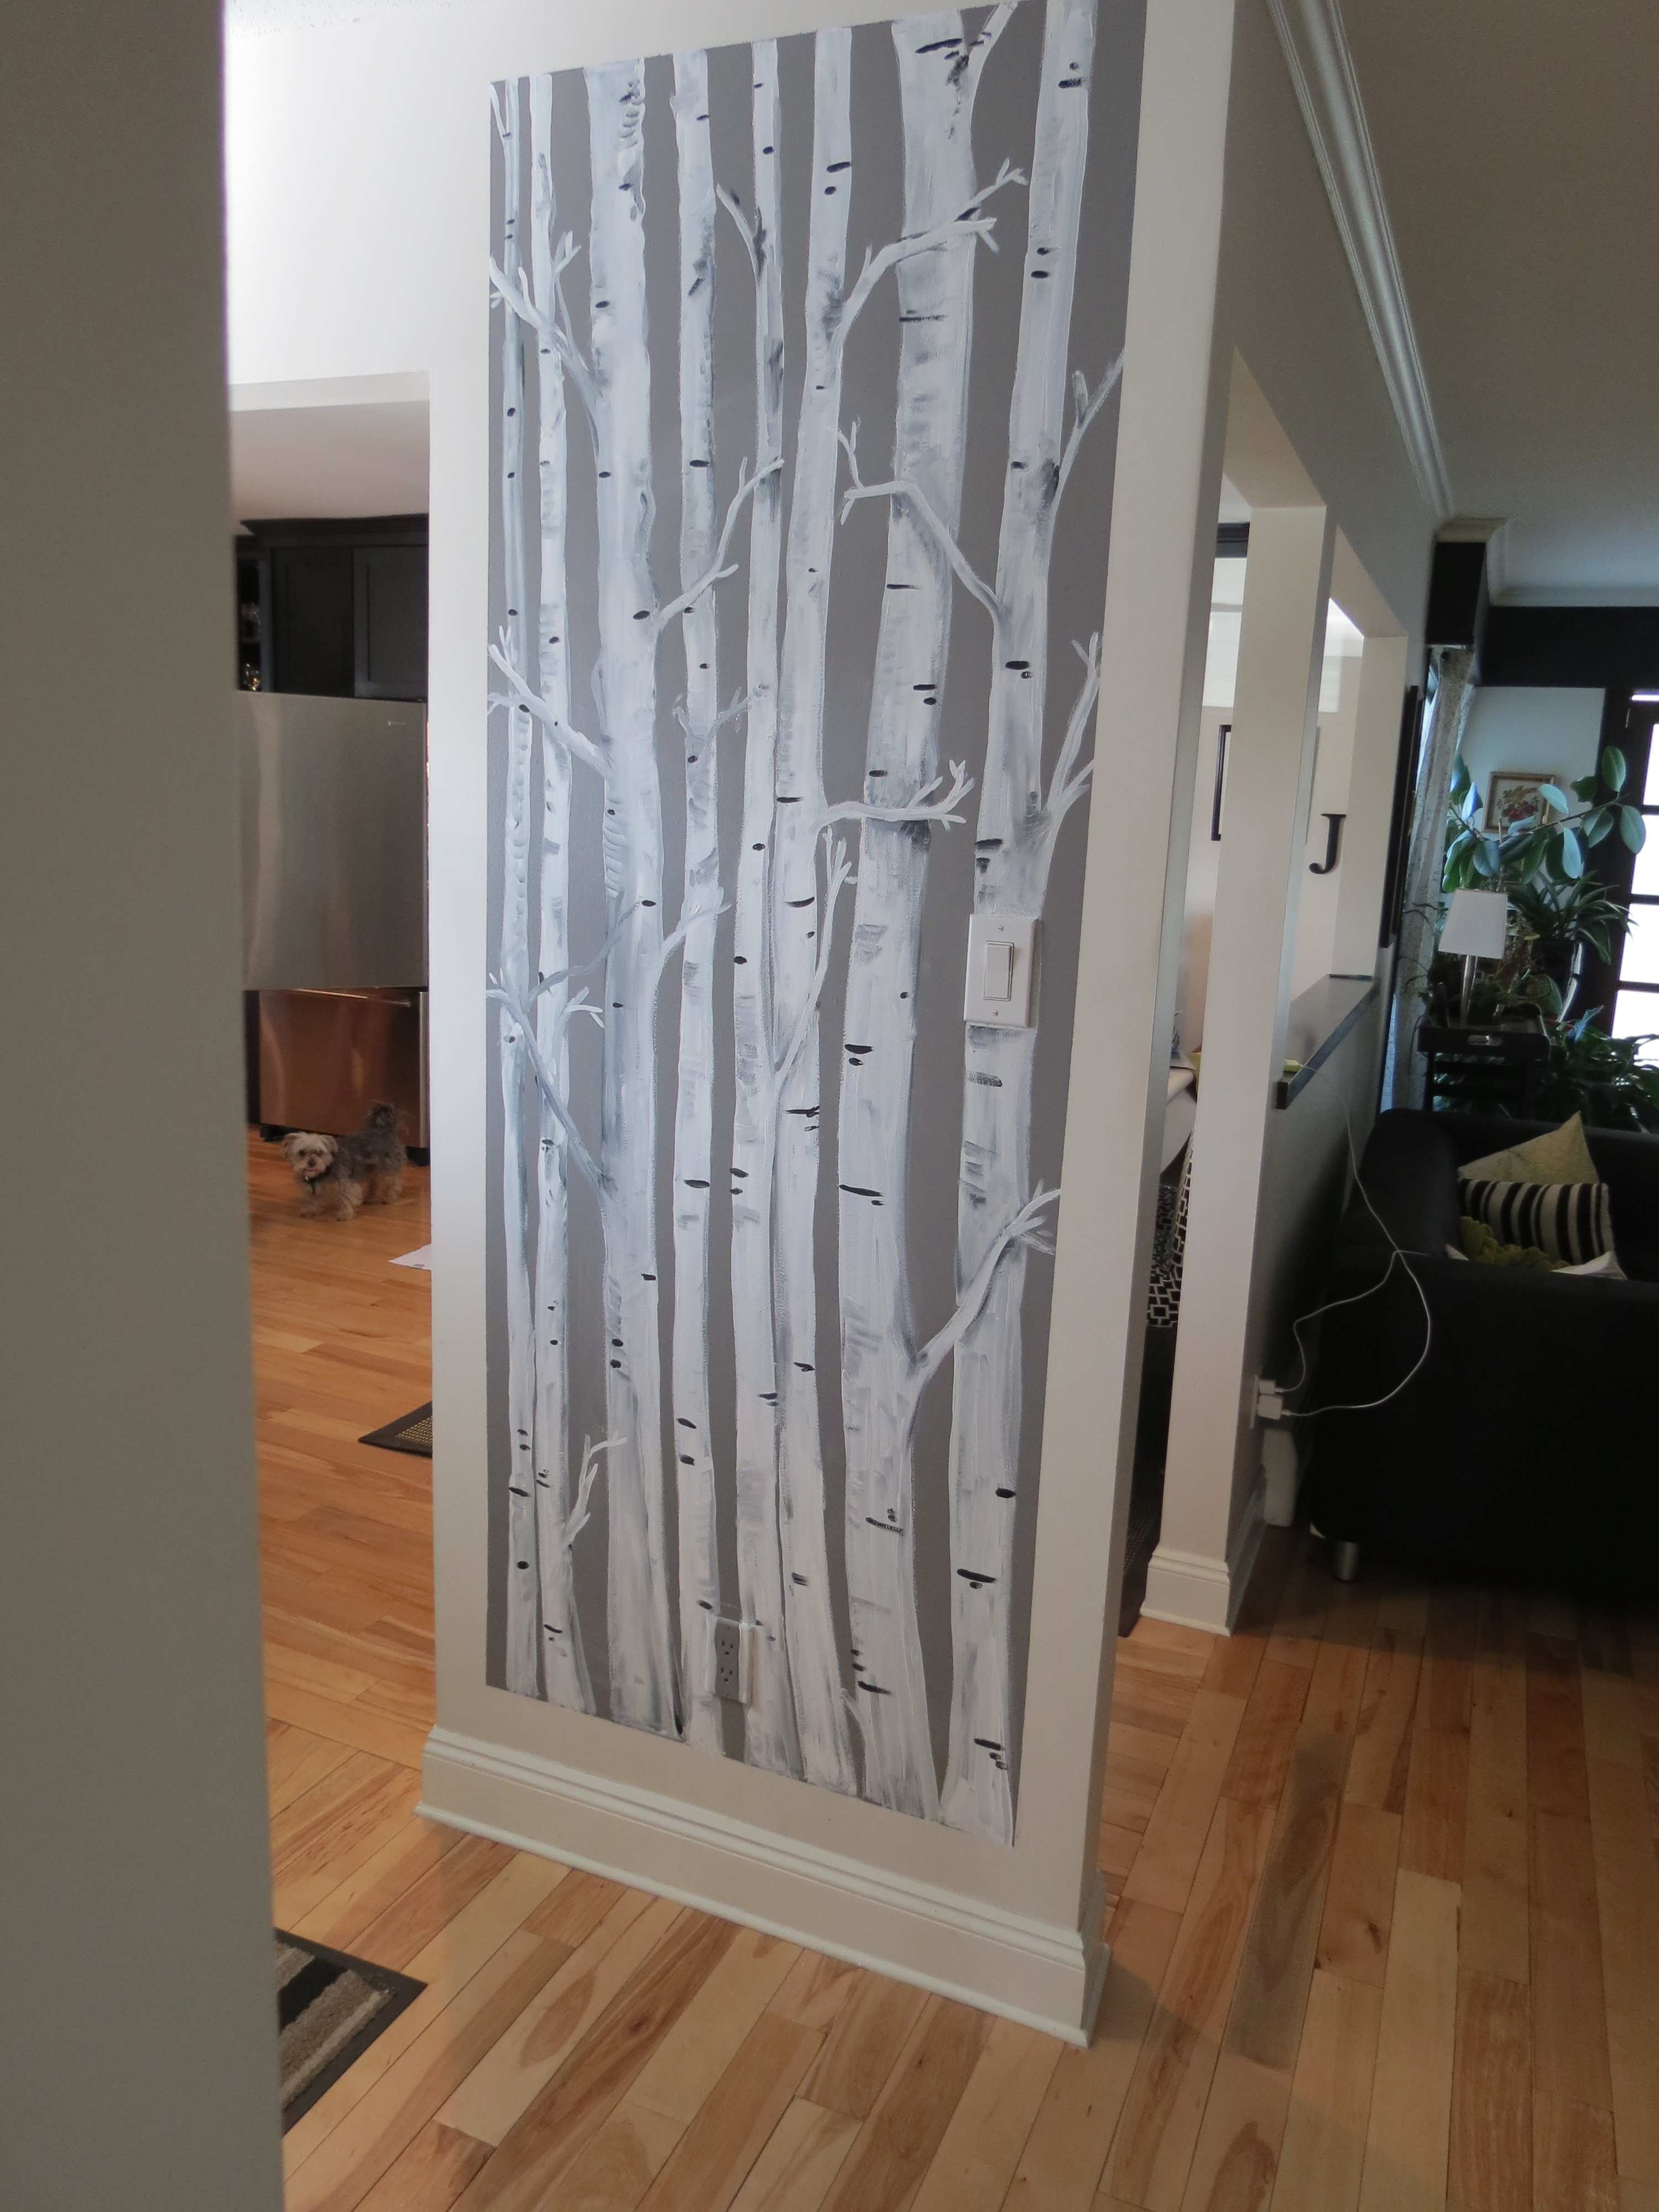 Black And White Birch Tree Wallpaper - Accent Wall Trees Painted , HD Wallpaper & Backgrounds